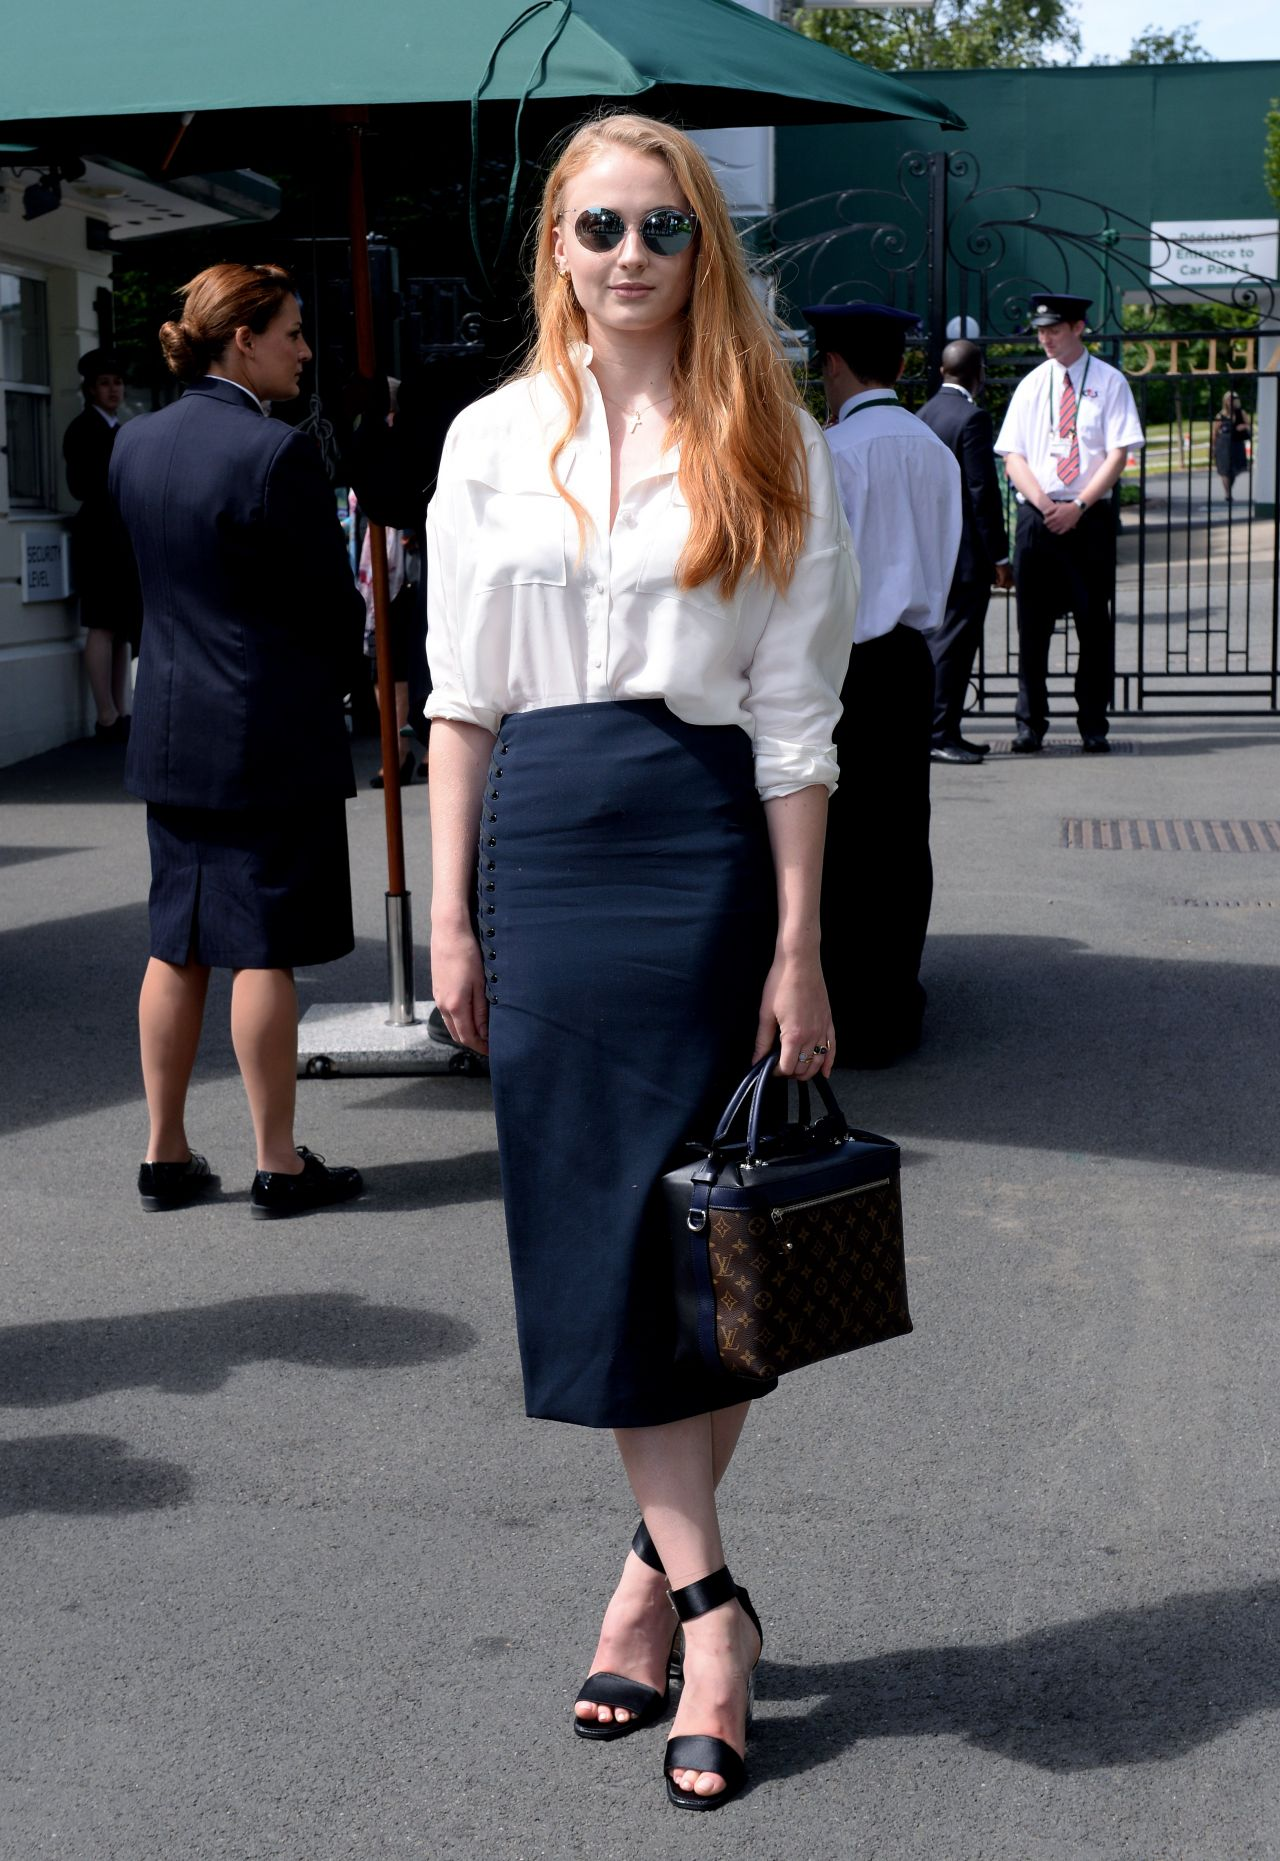 Софи Тернер (актриса) (Sophie Turner (actress))